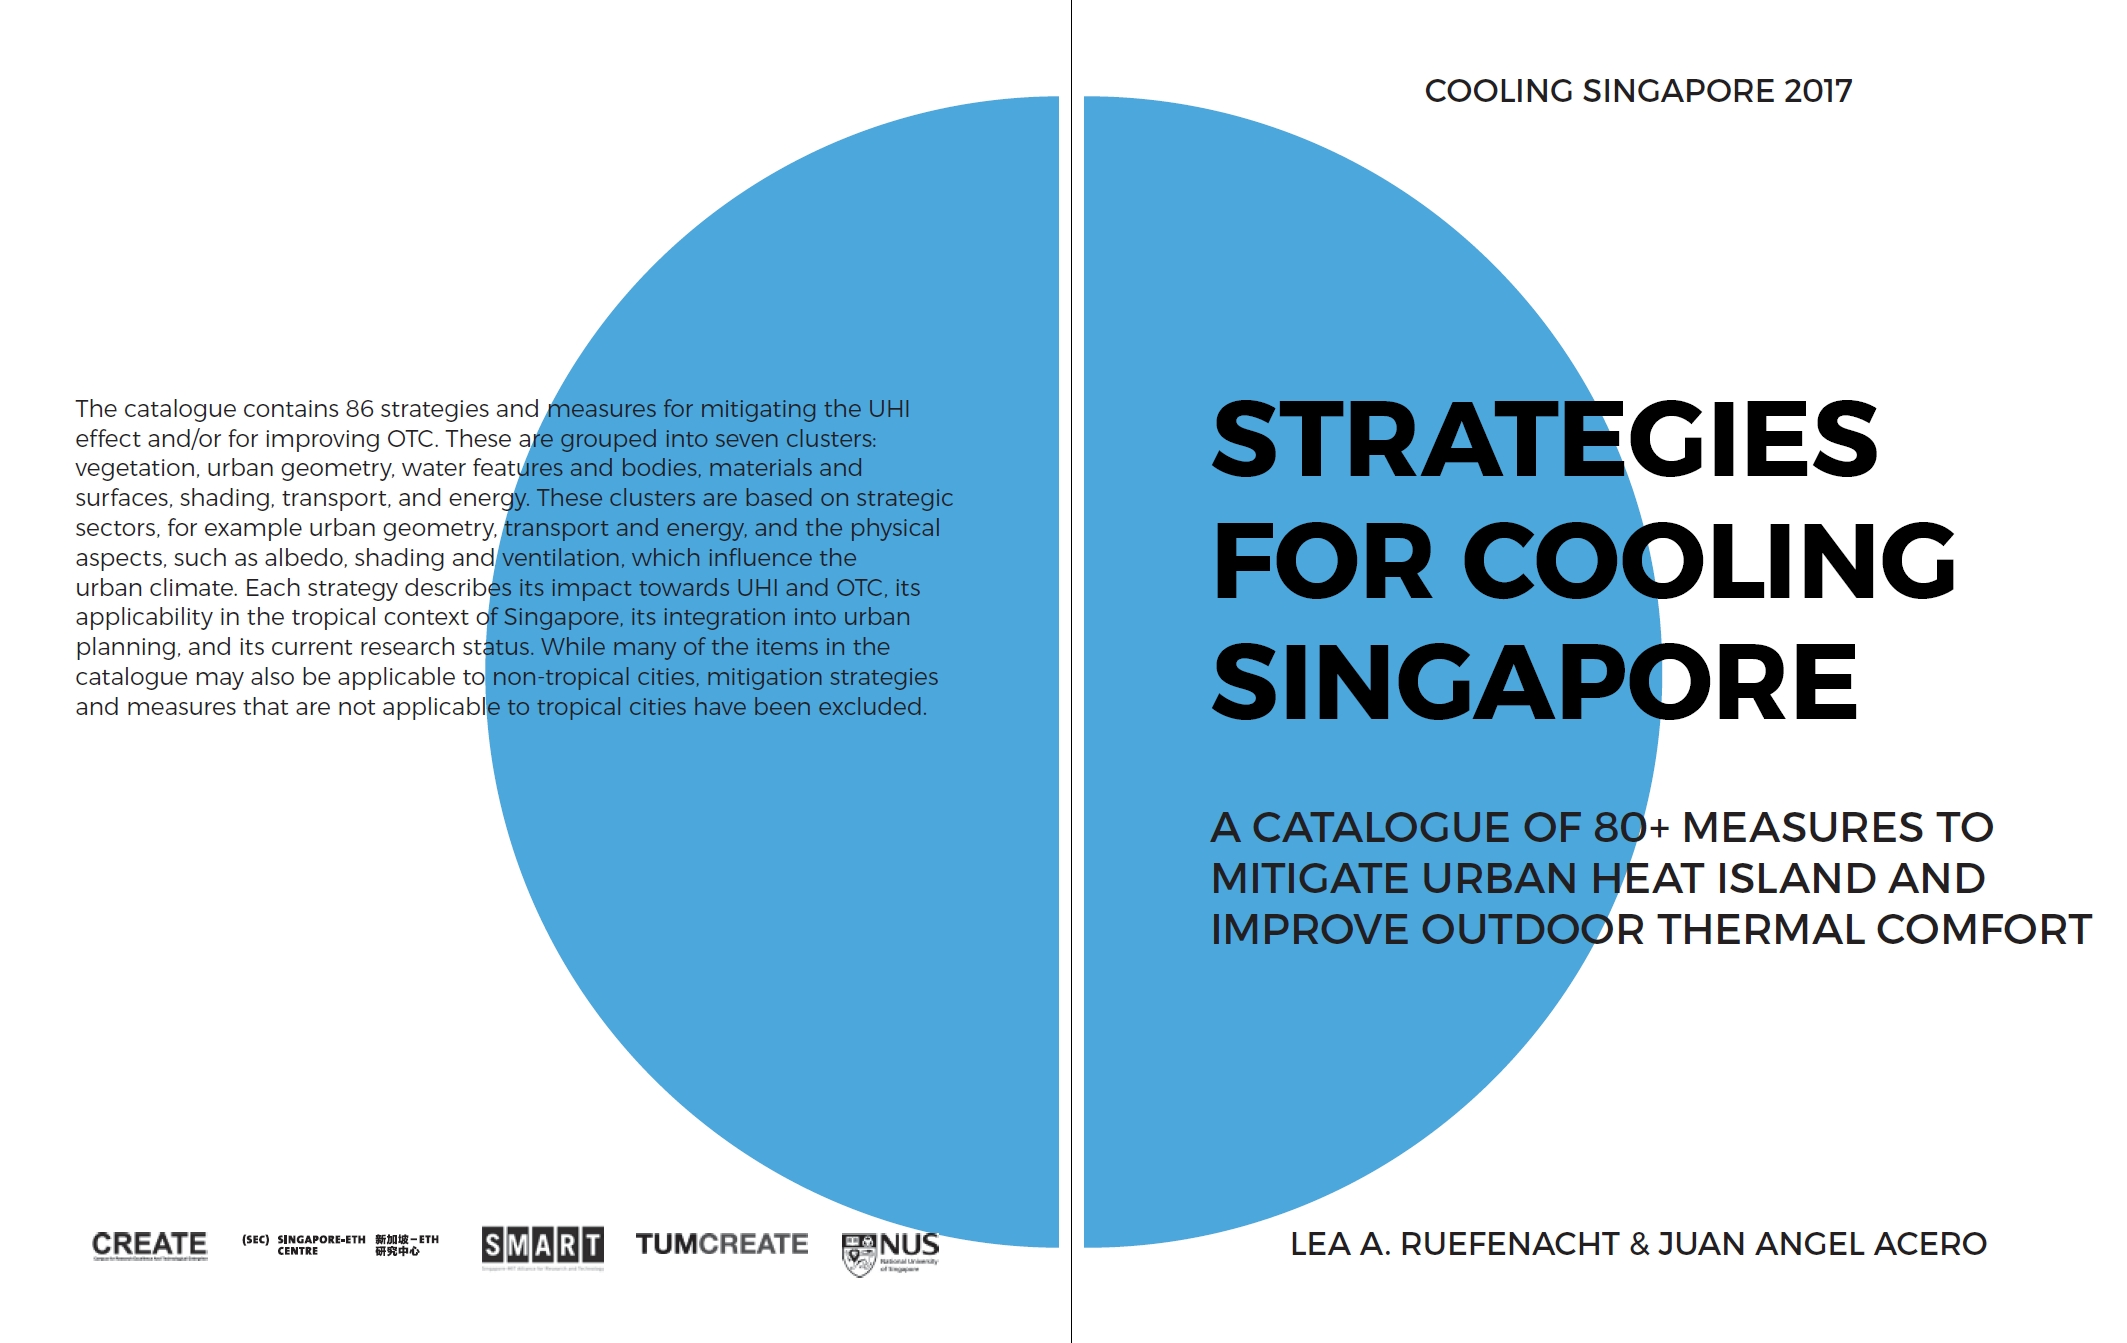 Fig 1. Strategies for Cooling Singapore: Catalogue of more than 80 measures to mitigate urban heat island and improve outdoor thermal comfort / Source: Lea Ruefenacht